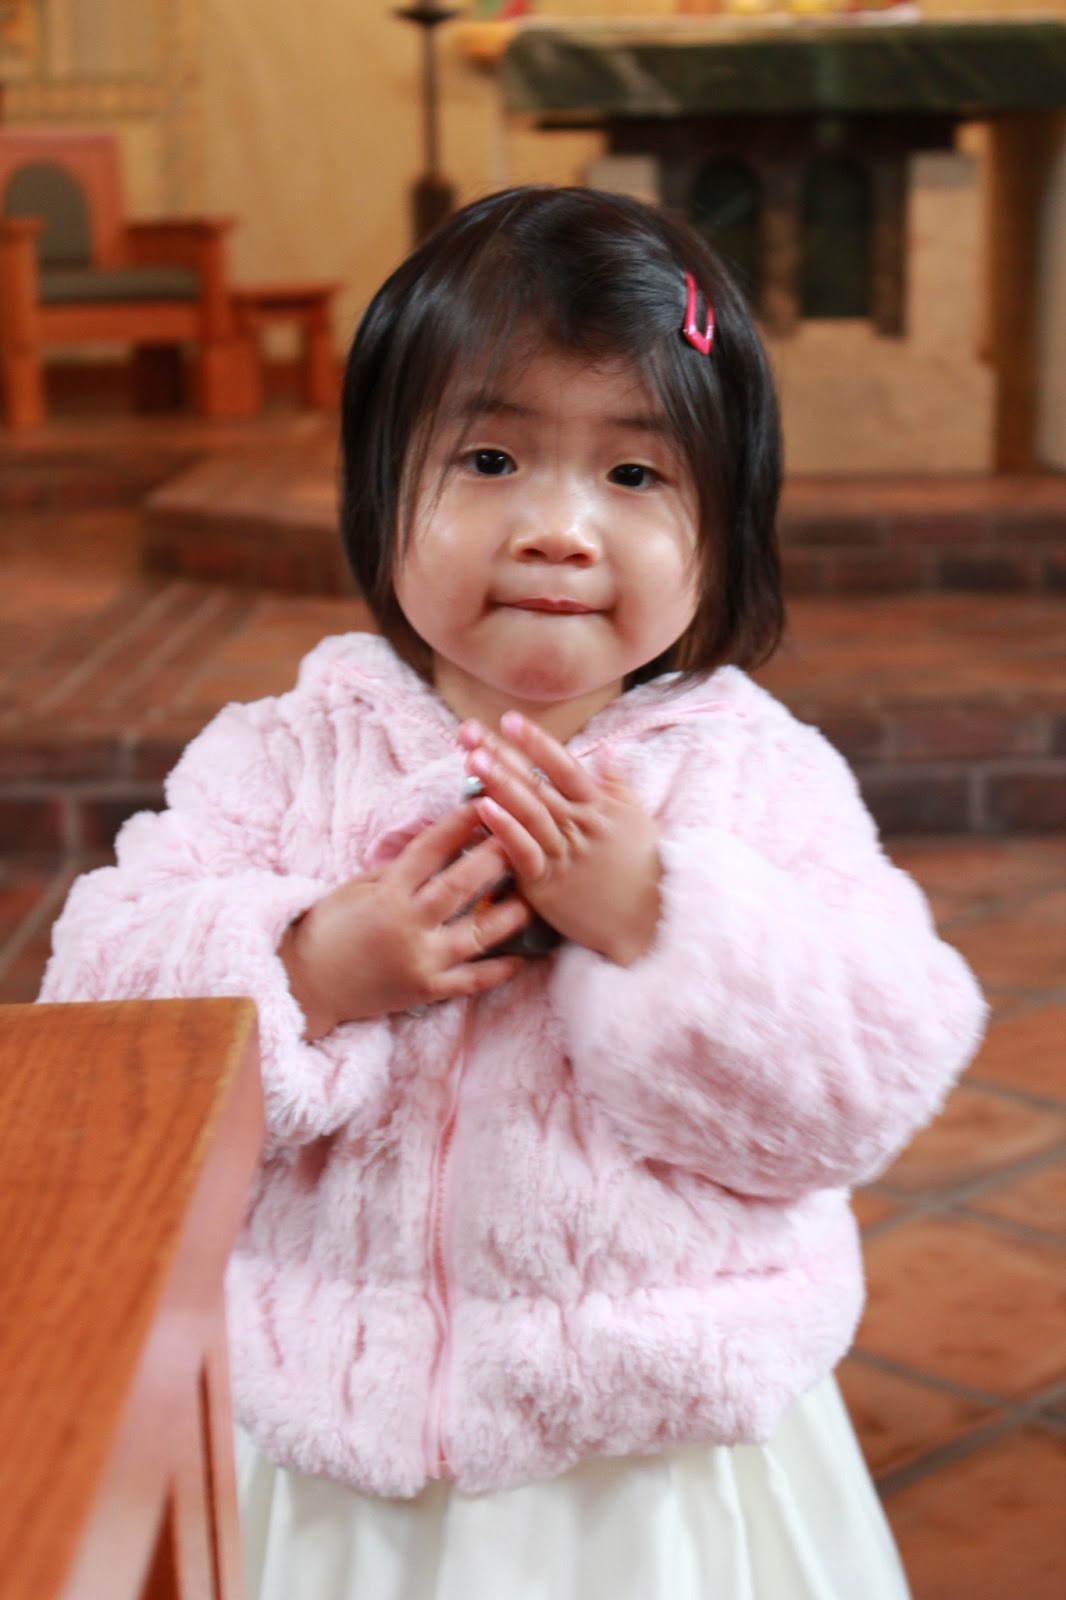 life, love, laughter and lauren!: happy baptism day!